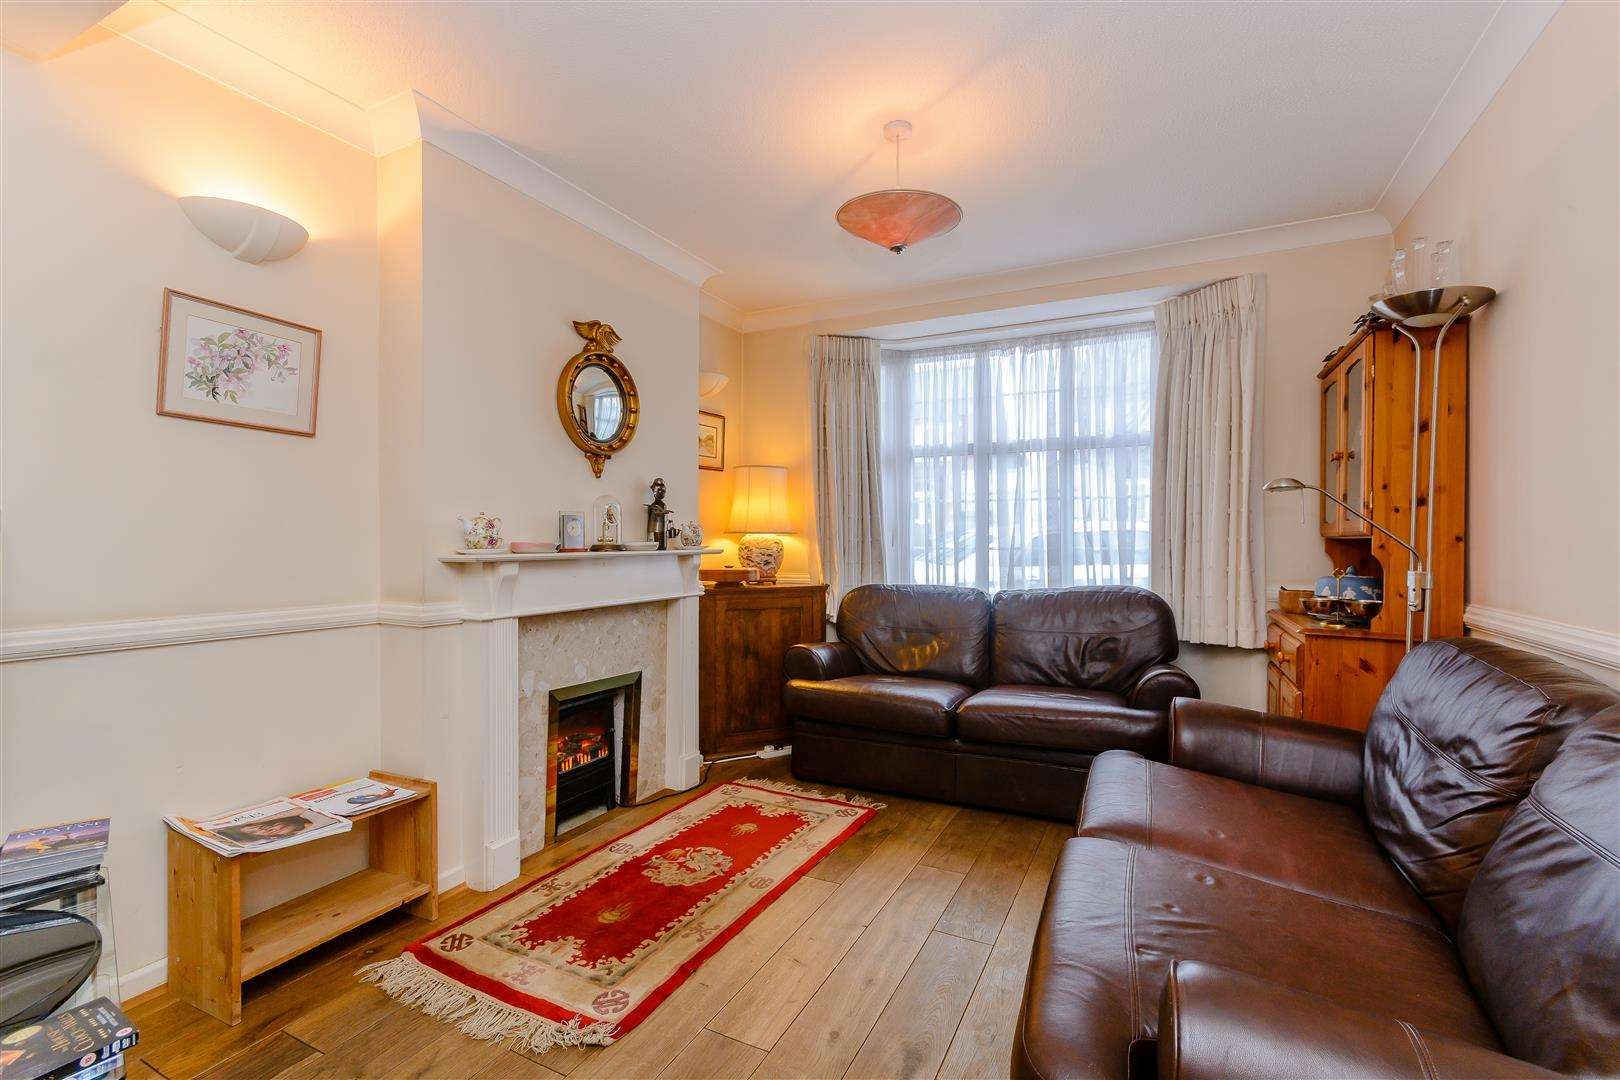 4 bed for sale in Merry Hill Road, Bushey - (Property Image 6)